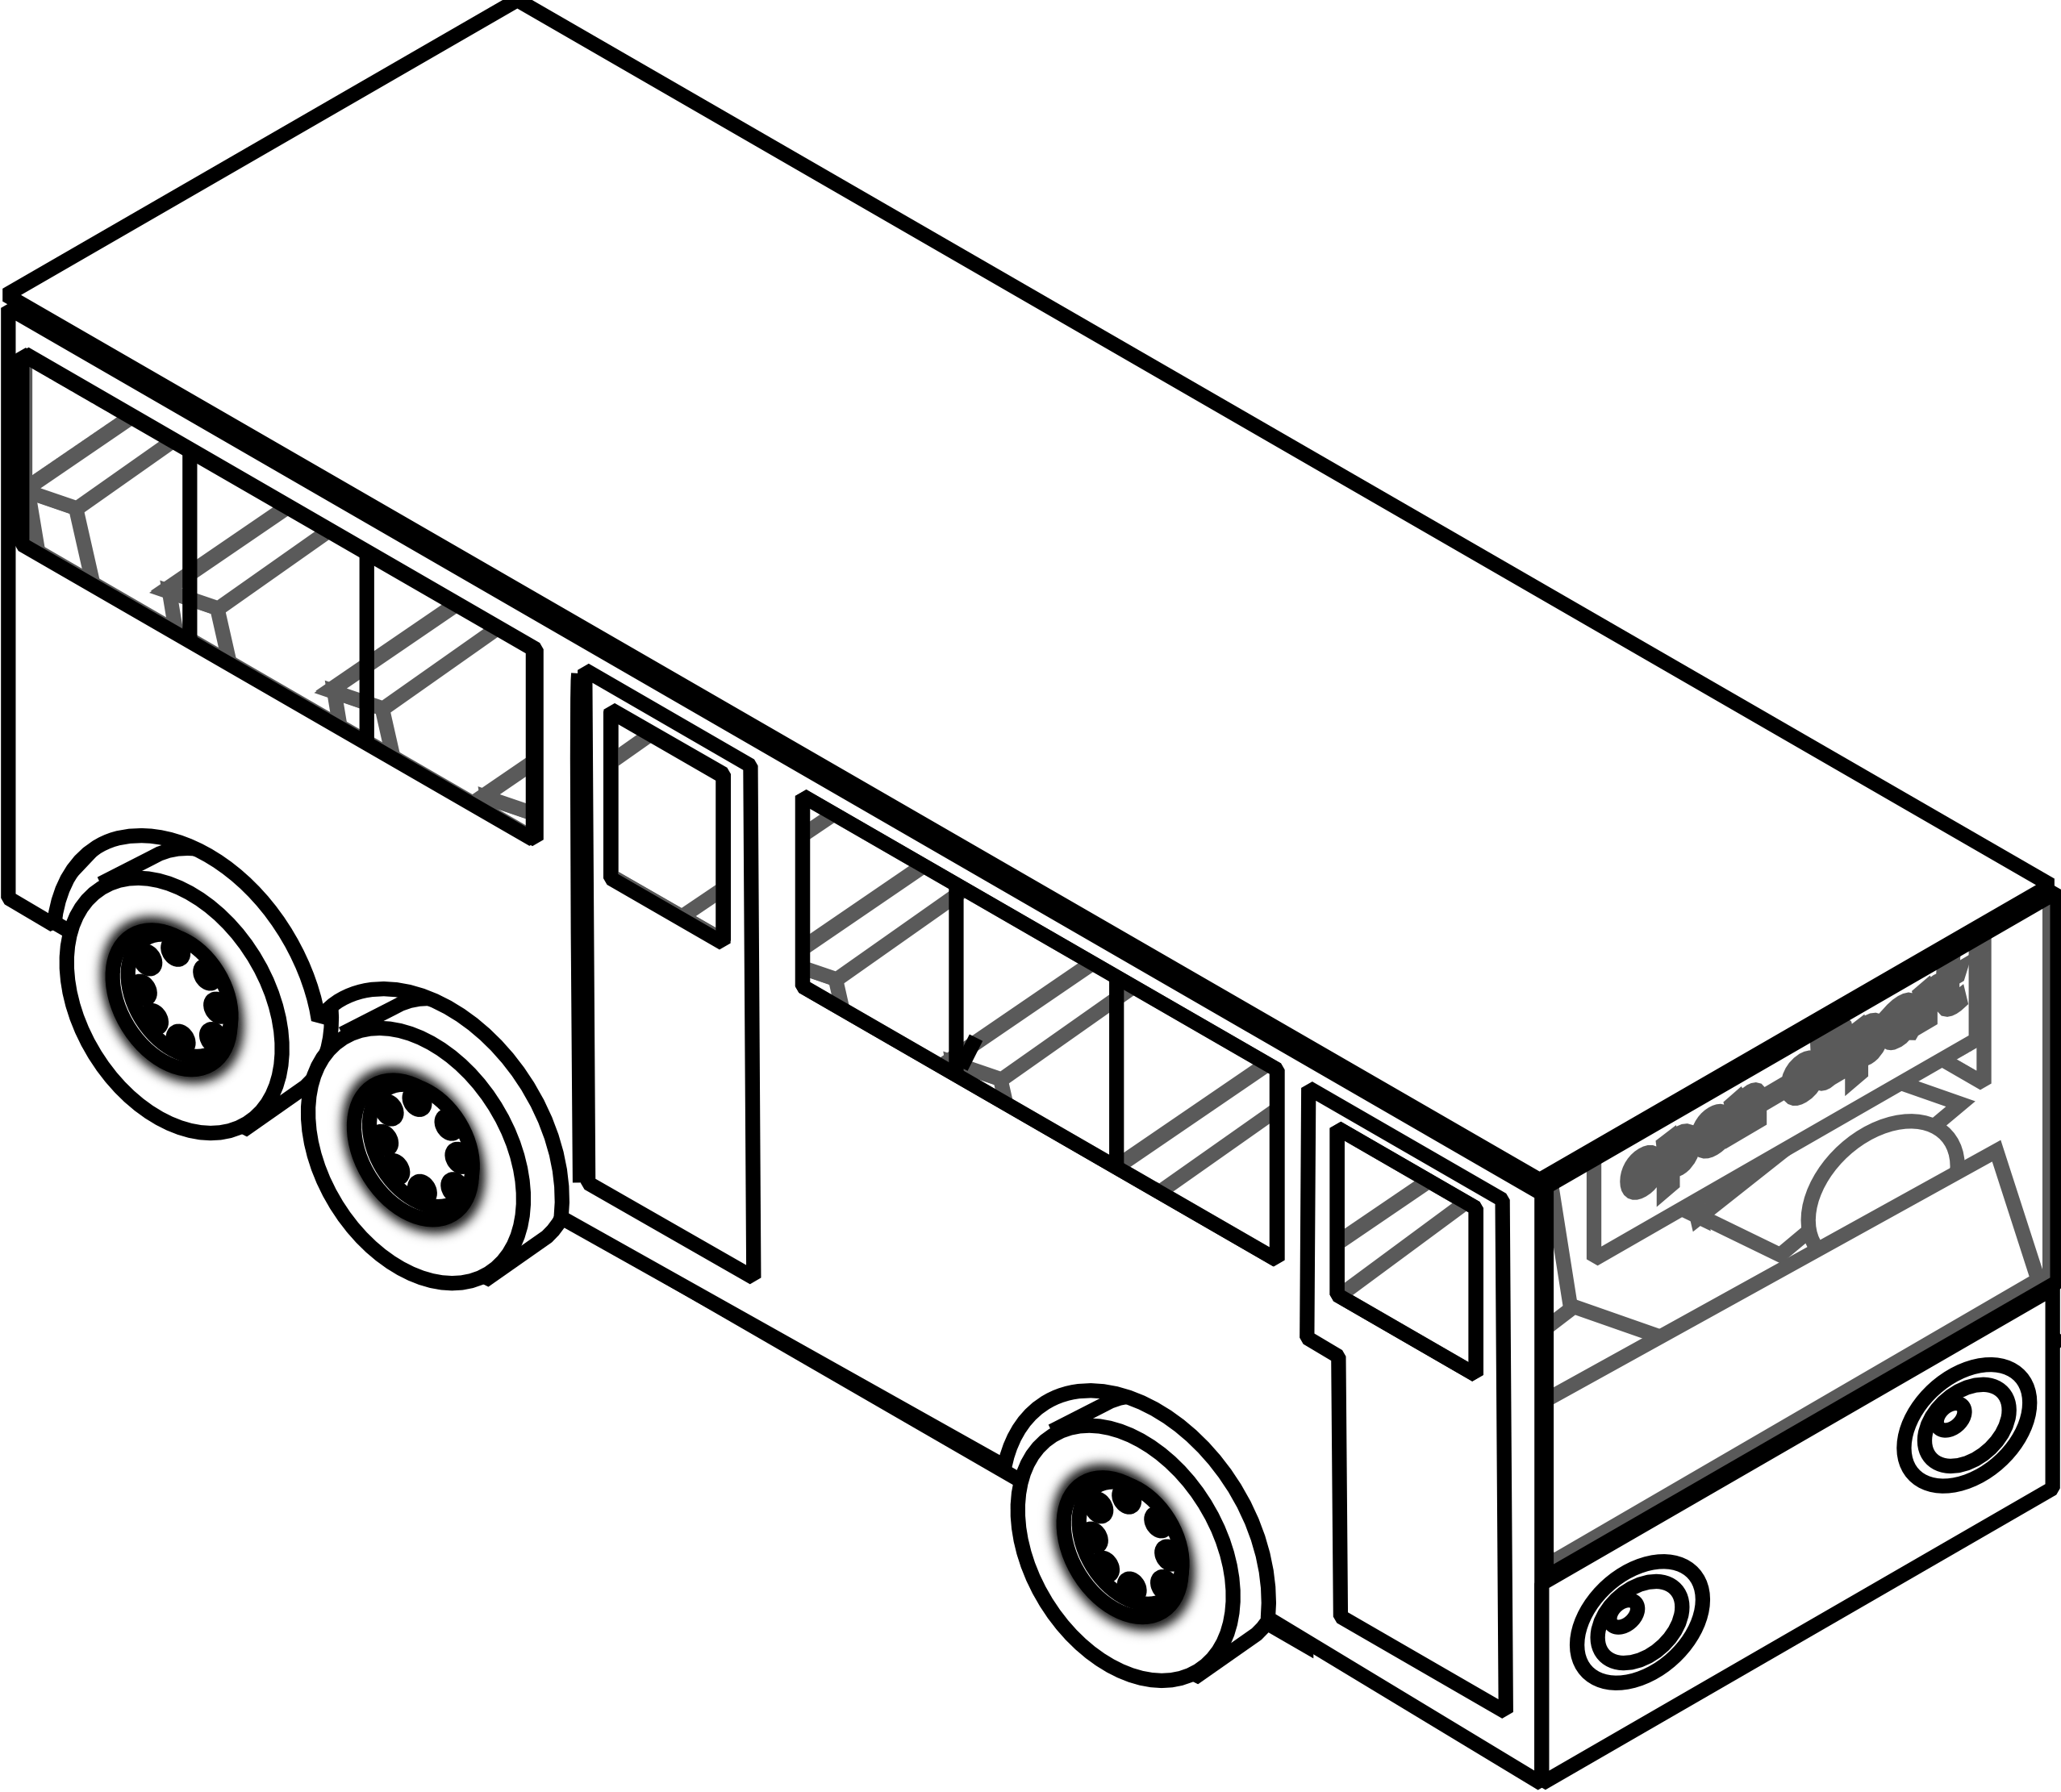 Transport drawing. Black and white car